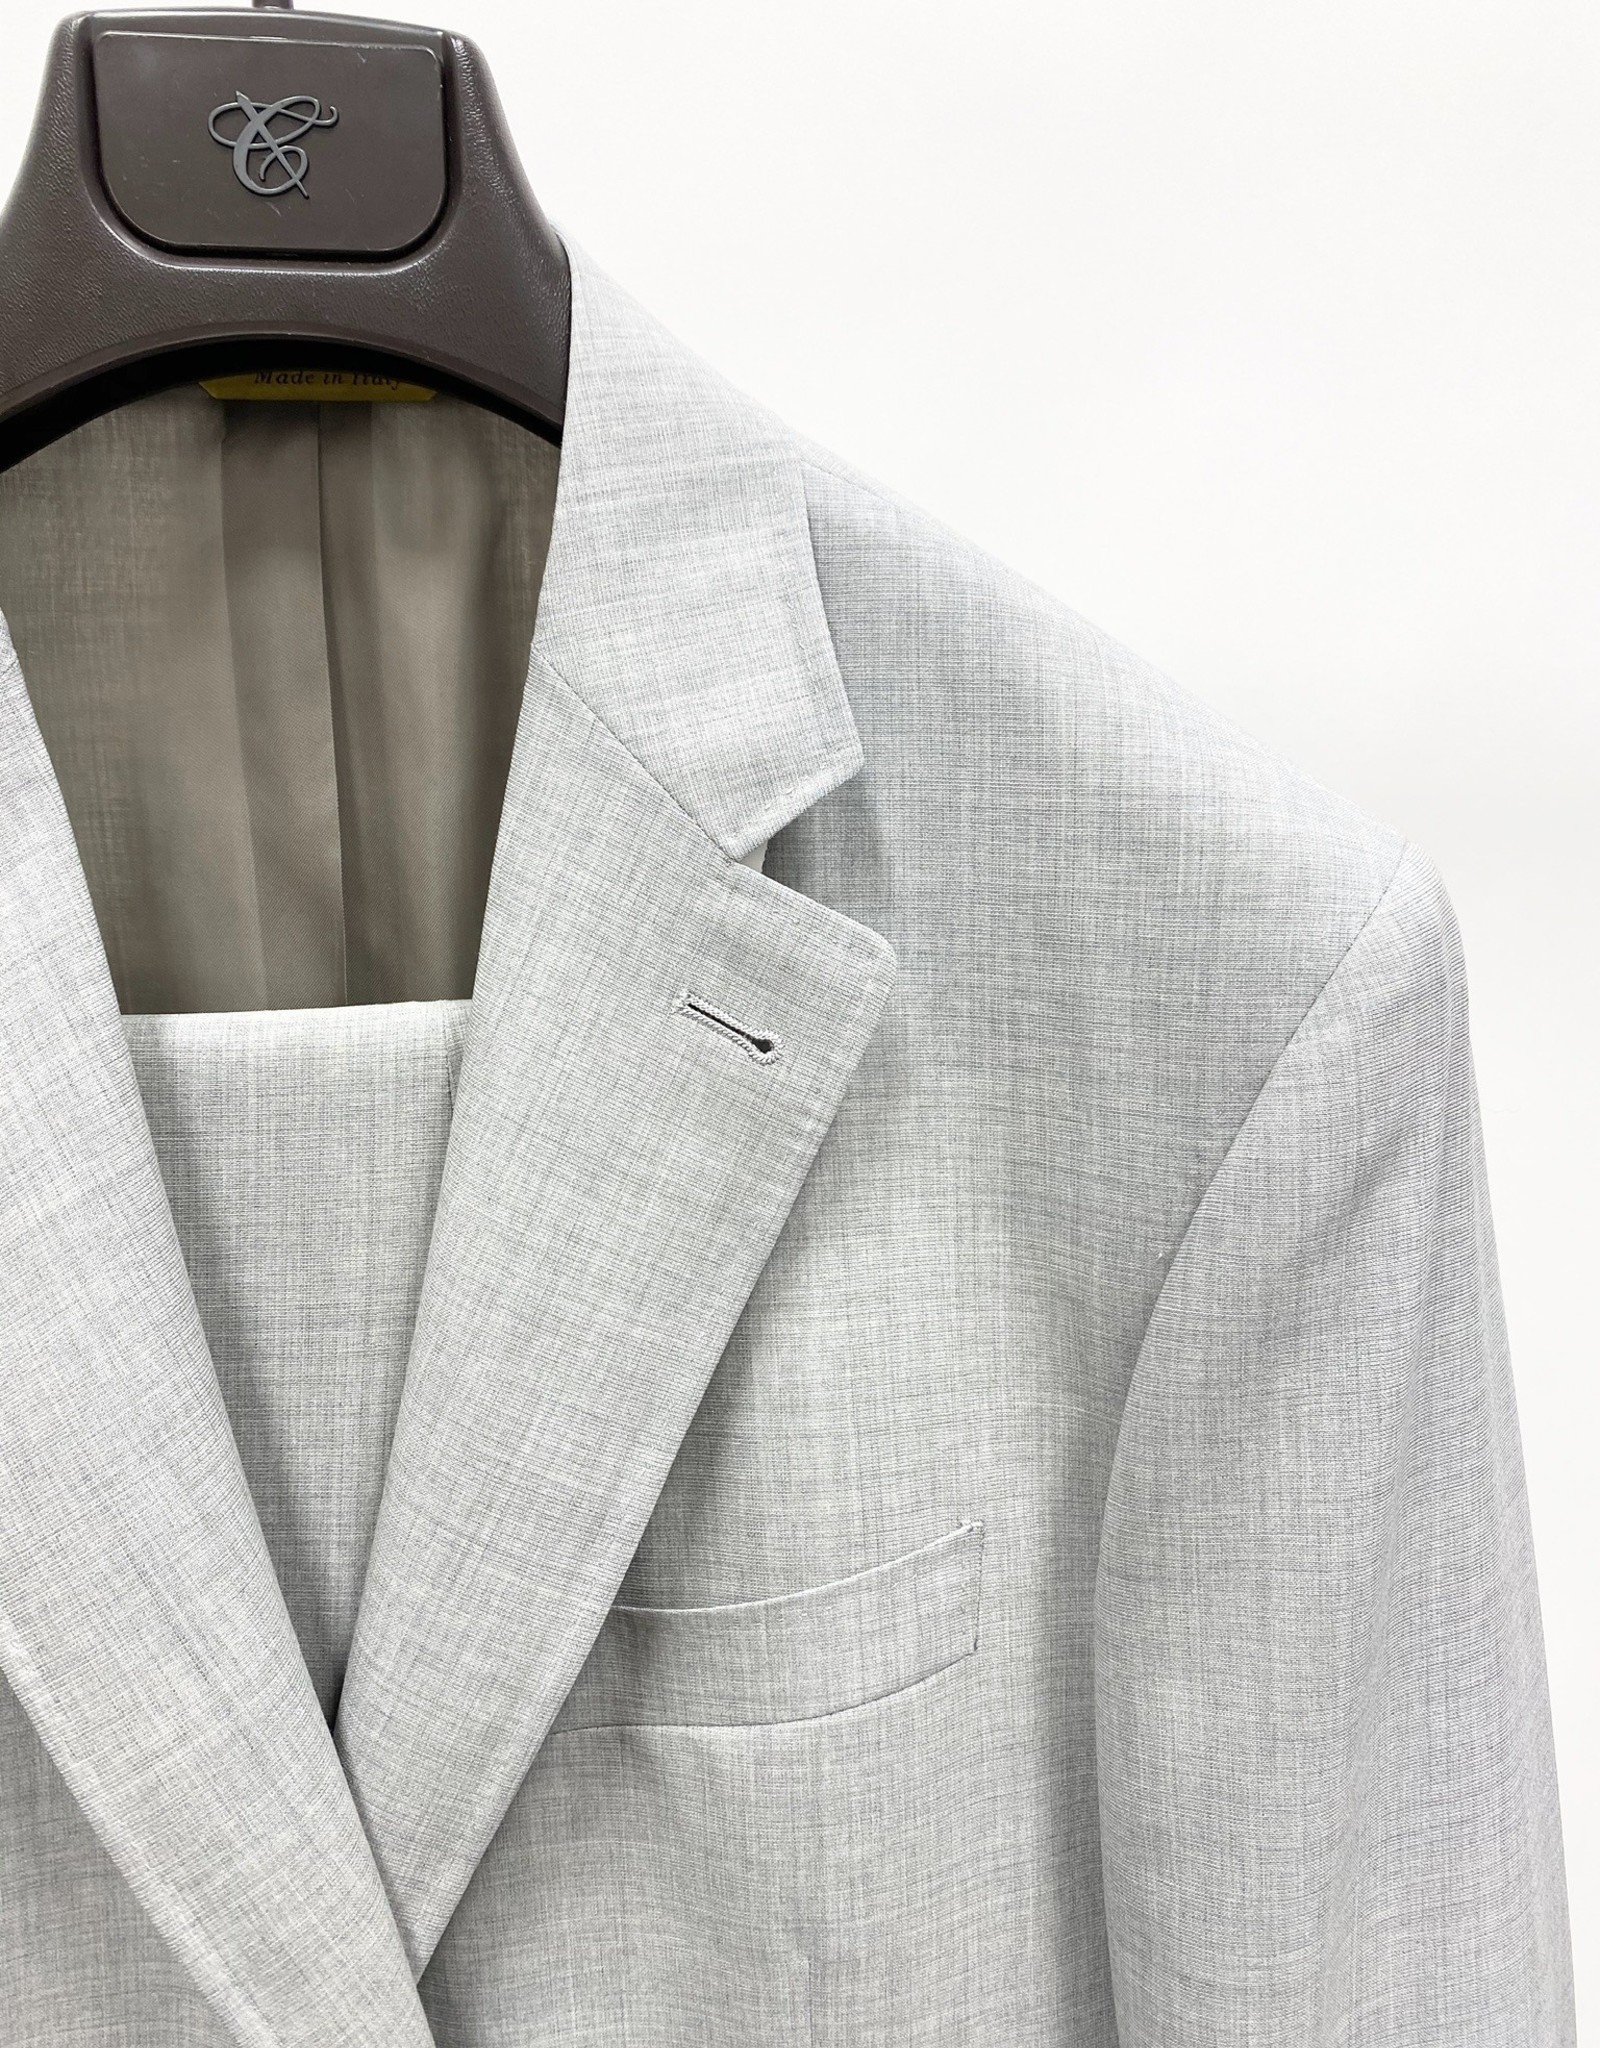 Canali Summer Wool Suit